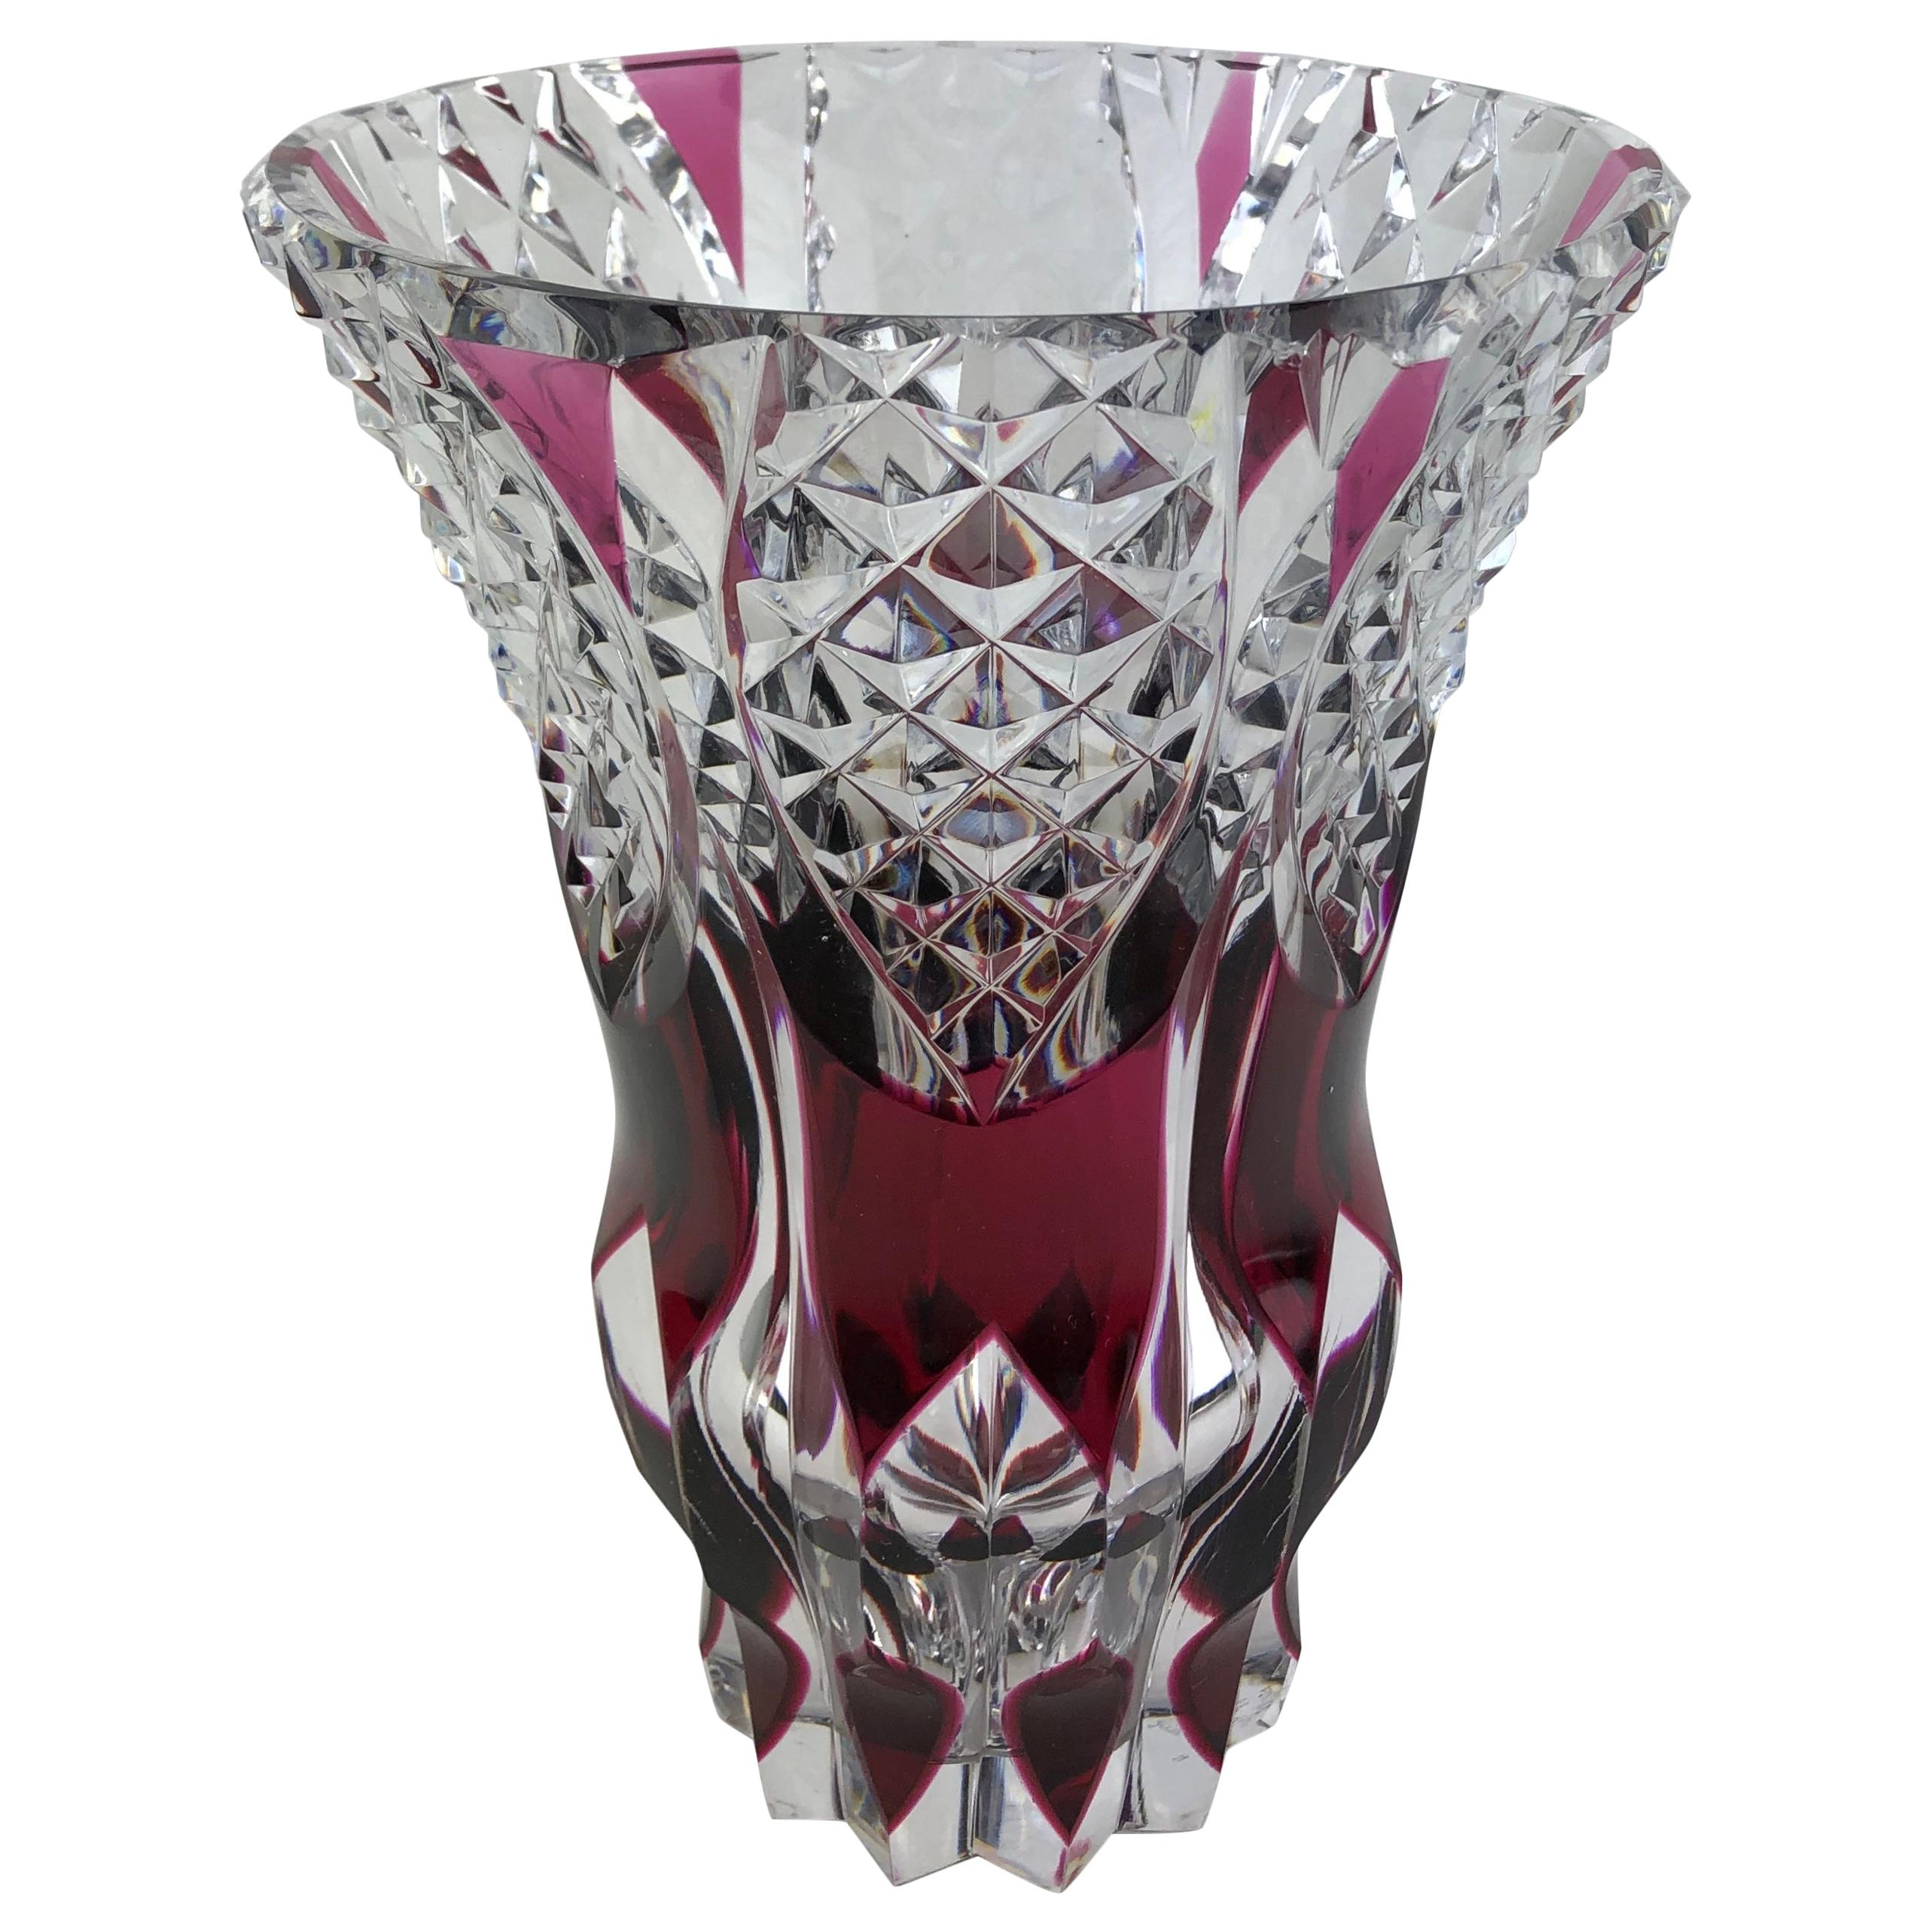 French Contemporary Amethyst or Pink Red Crystal Flower Vase